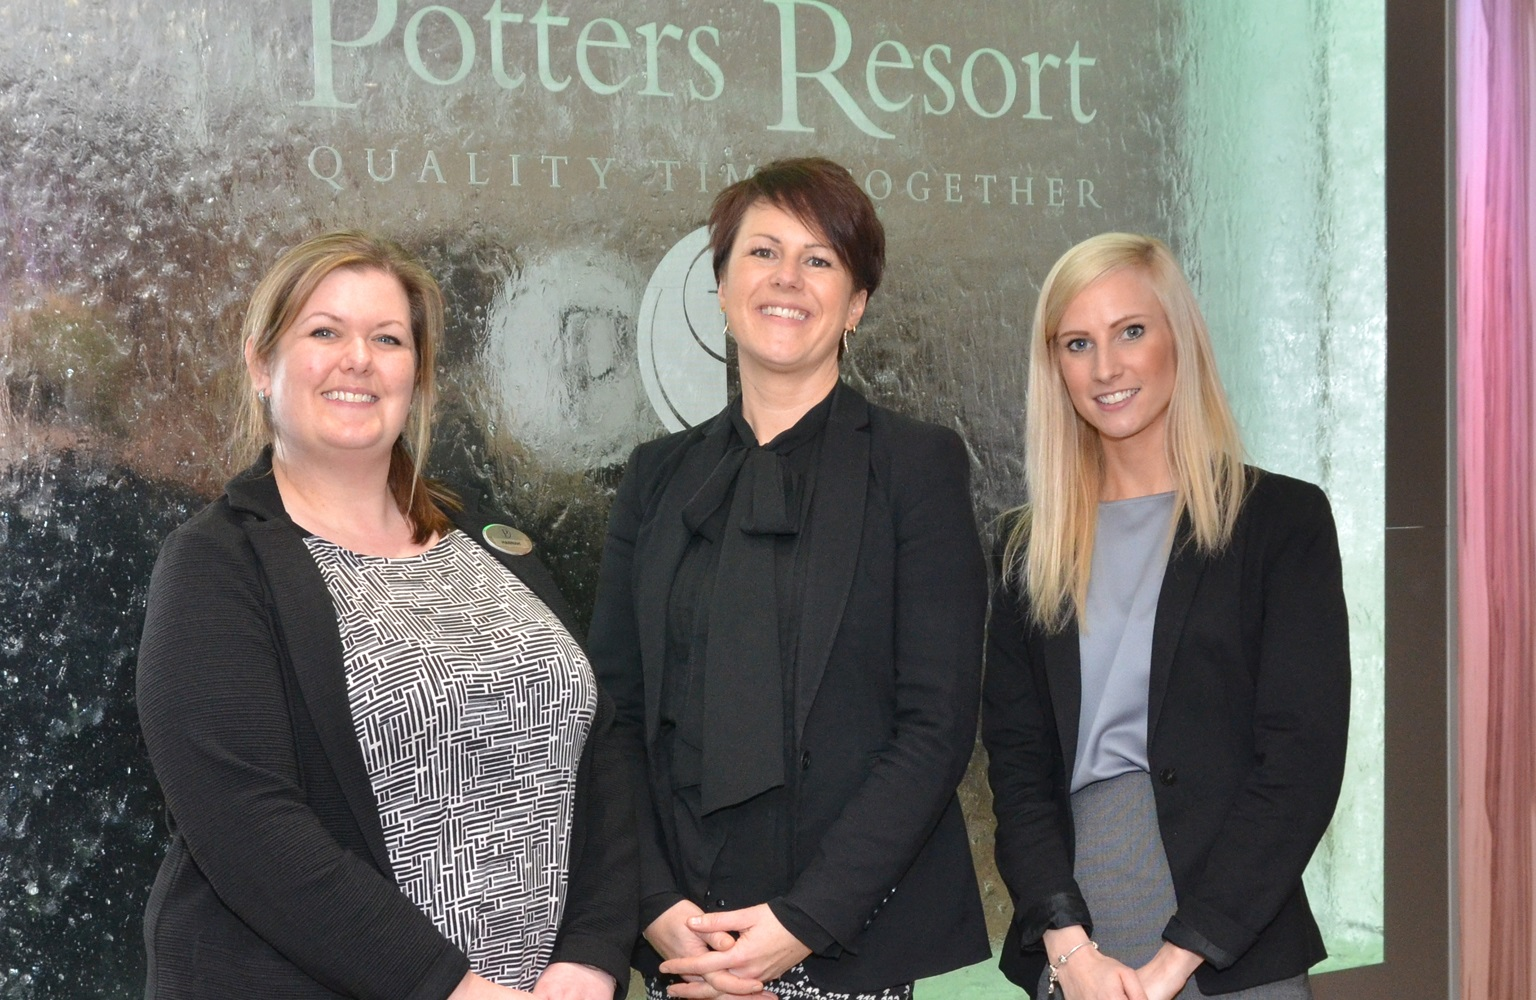 Looking for a new career move? Meet Potters HR team and find out their interview advice